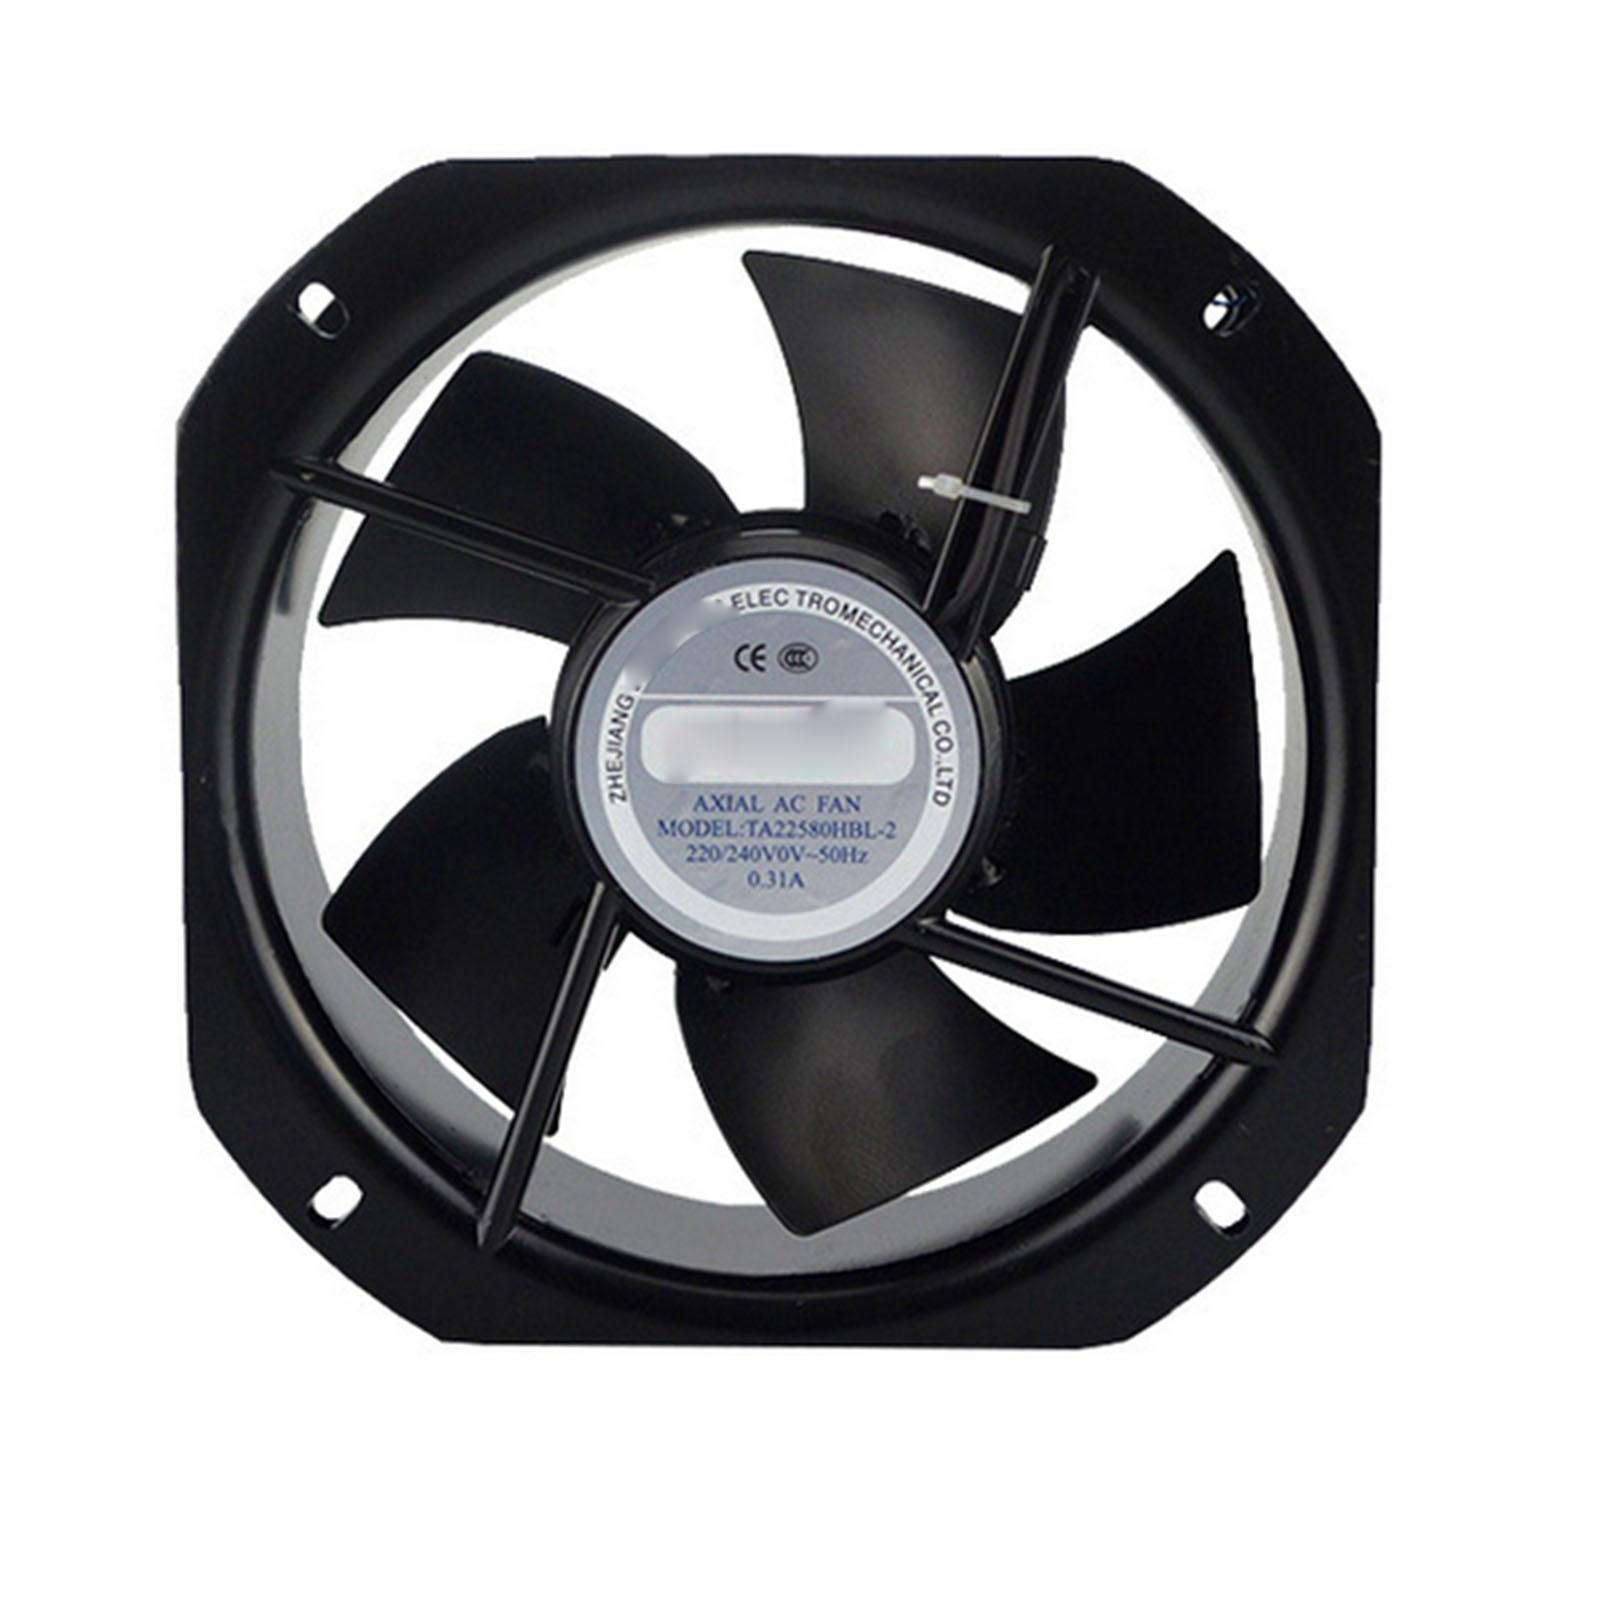 220V AC 225x225x80mm Axial Radiator Fan 588CFM 2500RPM Ball Bearing High Speed